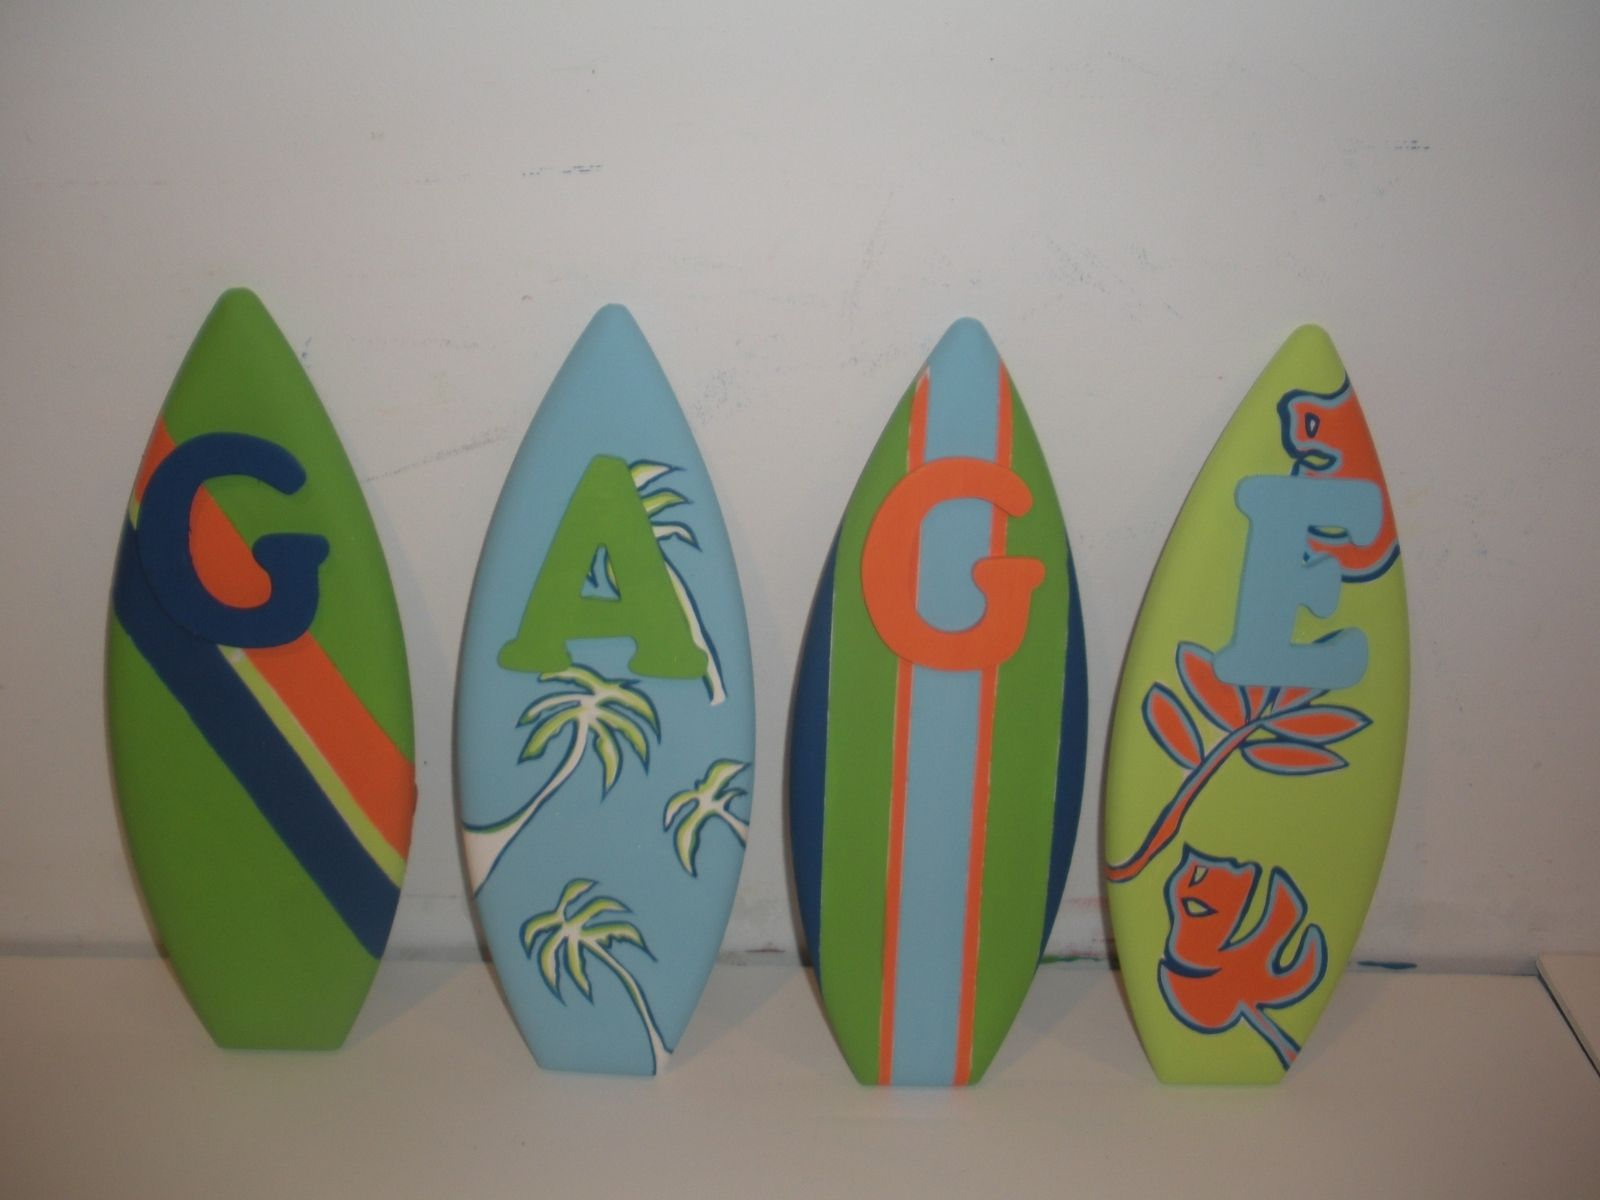 Handmade 1ft nursery wood surfboard letters by surfboardbeachart handmade 1ft nursery wood surfboard letters by surfboardbeachart custommade amipublicfo Image collections